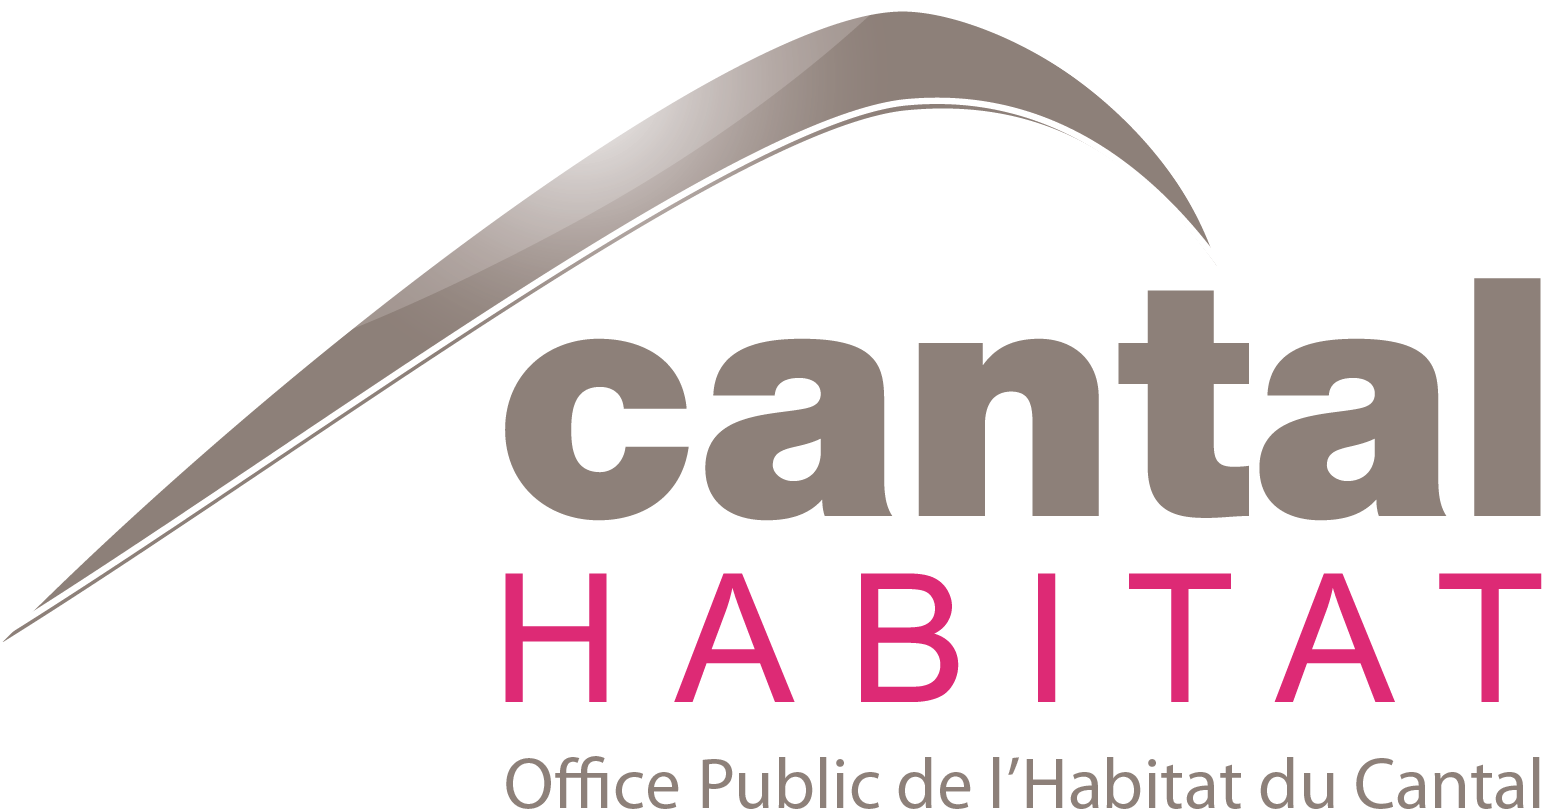 Cantal Habitat - Office Public de l'Habitat du Cantal